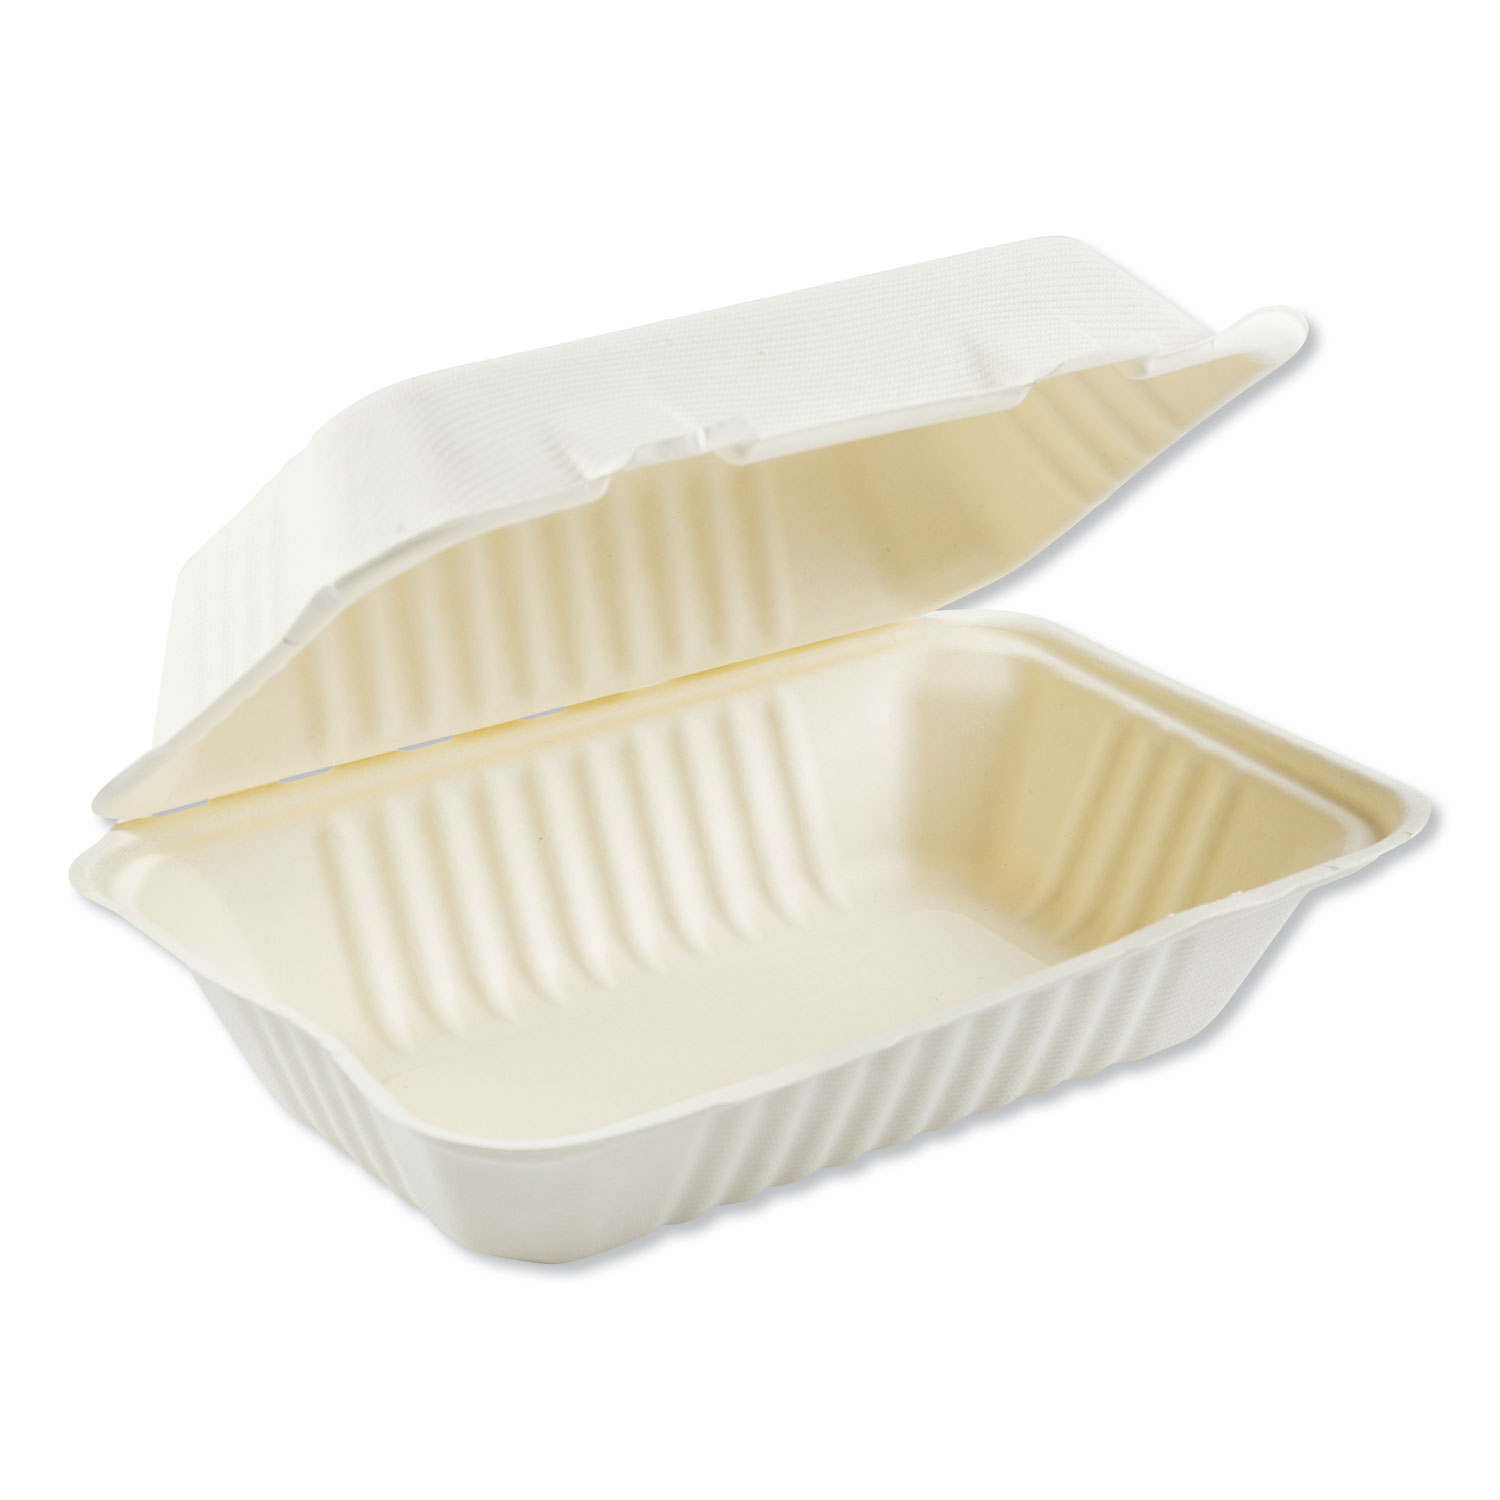 Bagasse Molded Fiber Food Containers, Hinged-Lid, 1-Compartment 9 x 6, White, 125/Sleeve, 2 Sleeves/Carton